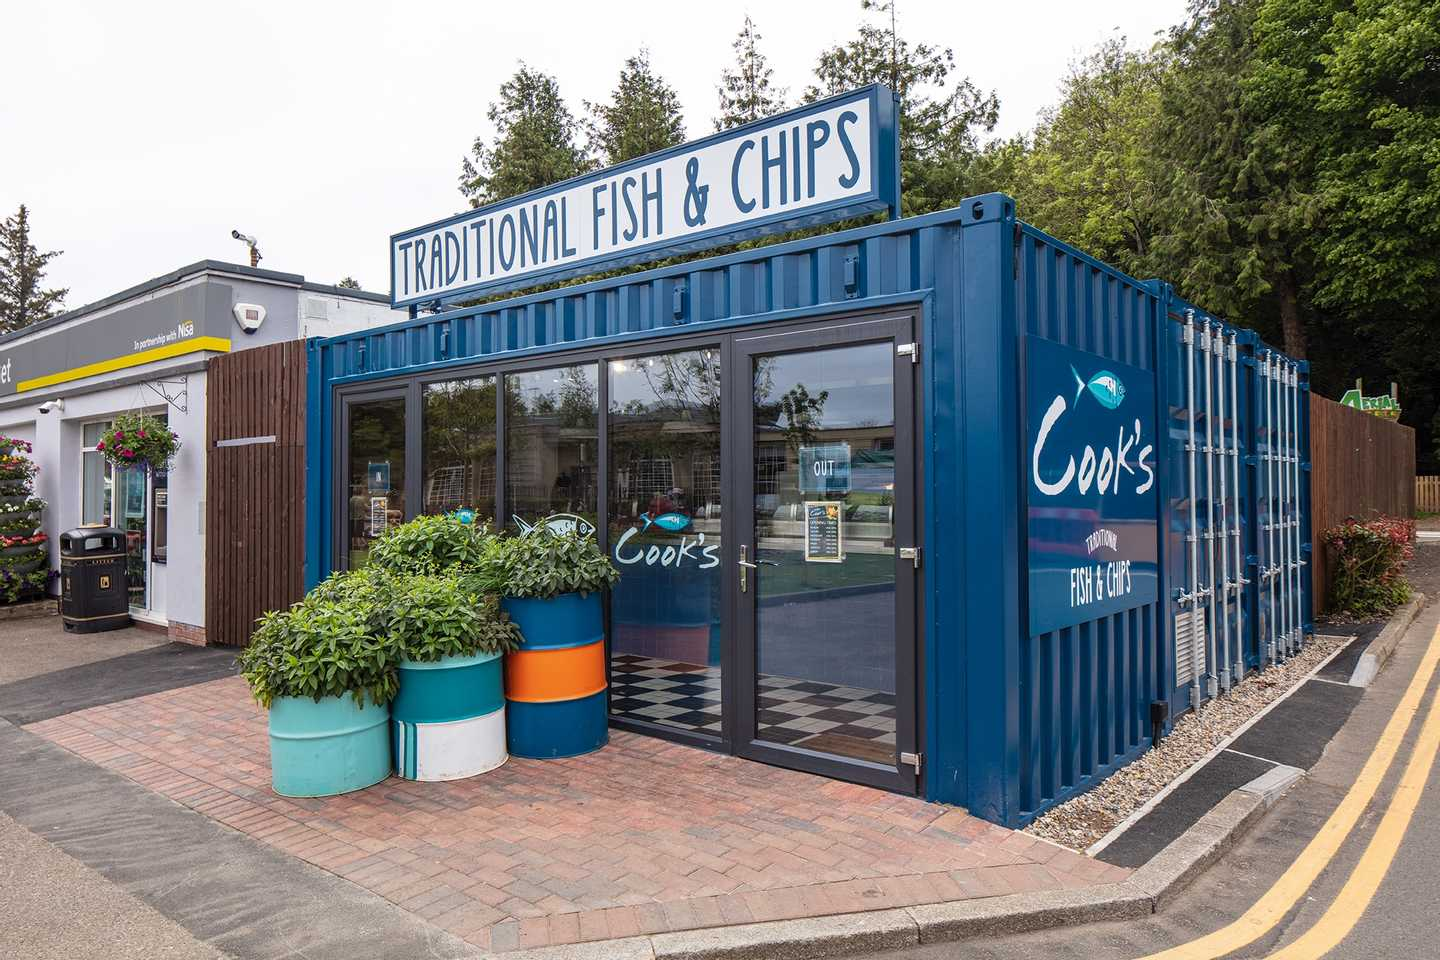 Cook's Fish and Chips